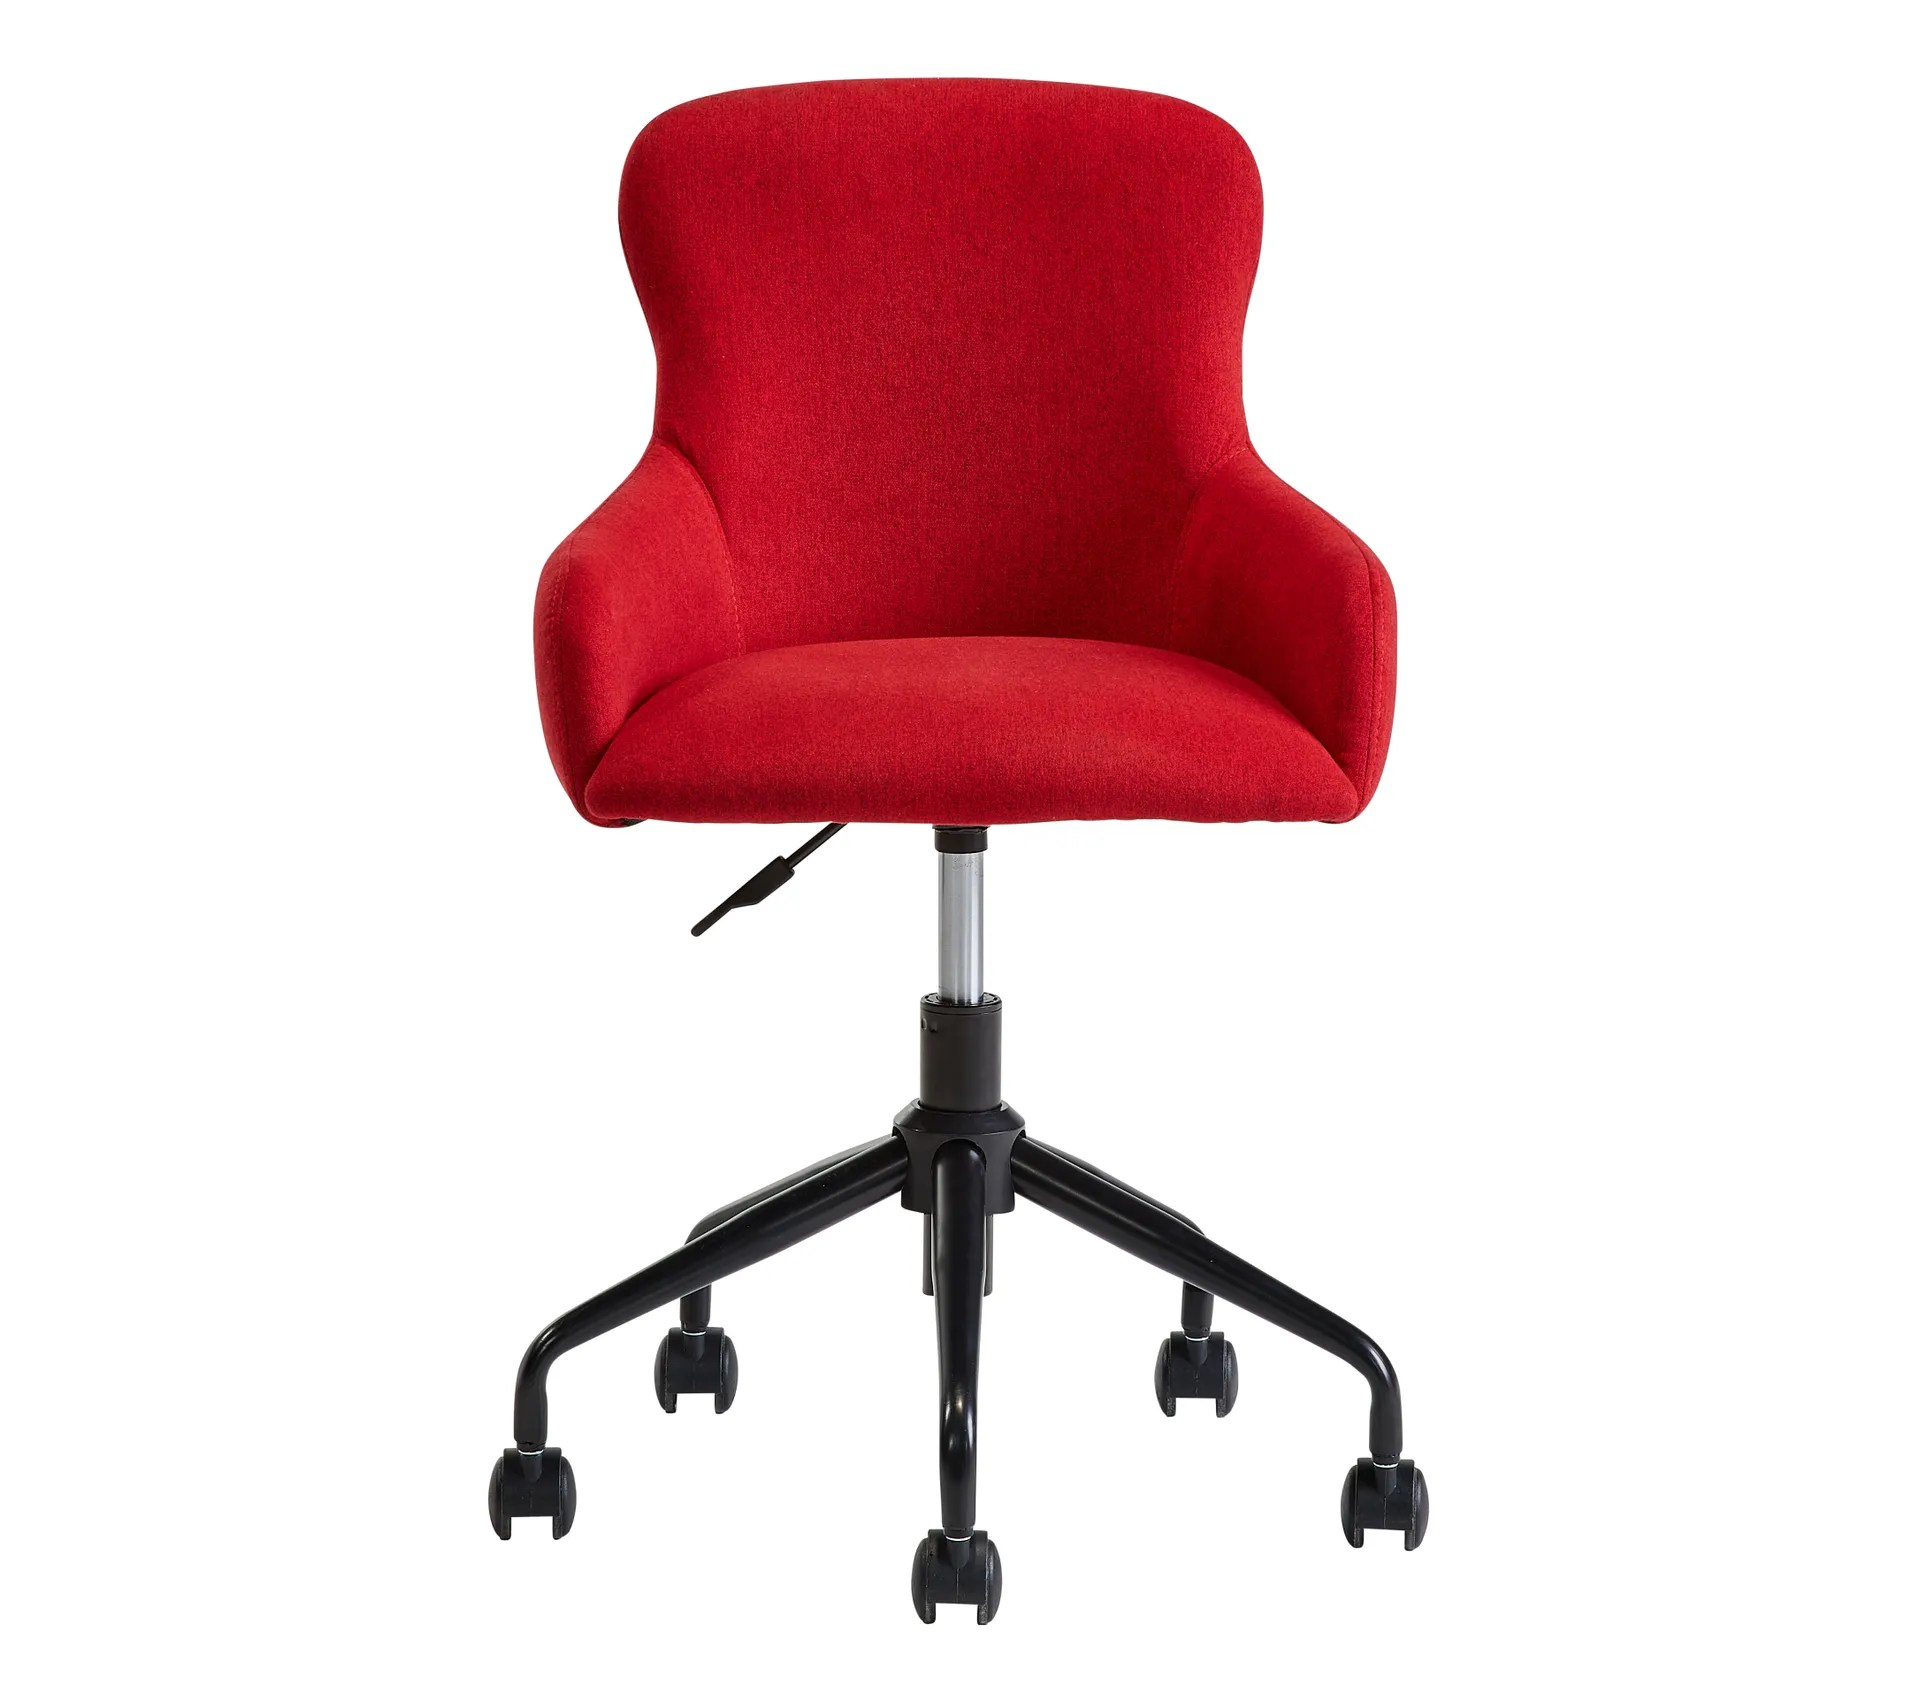 chaise dactylo cherry rouge